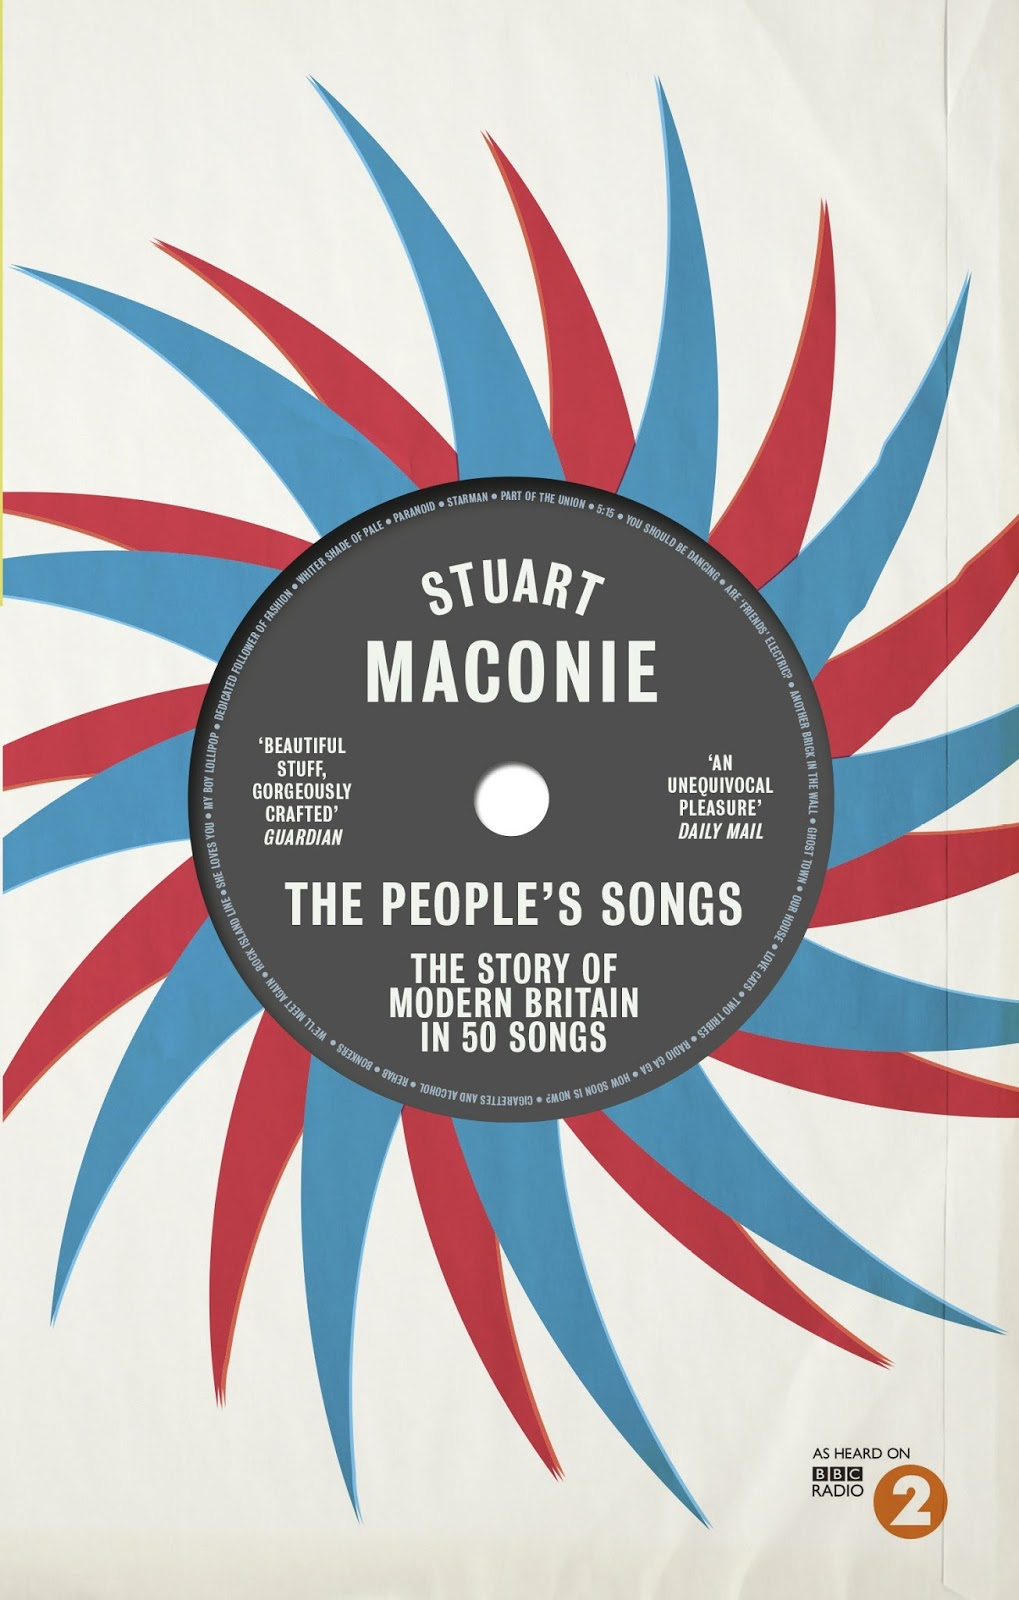 from Zackary is stuart maconie gay